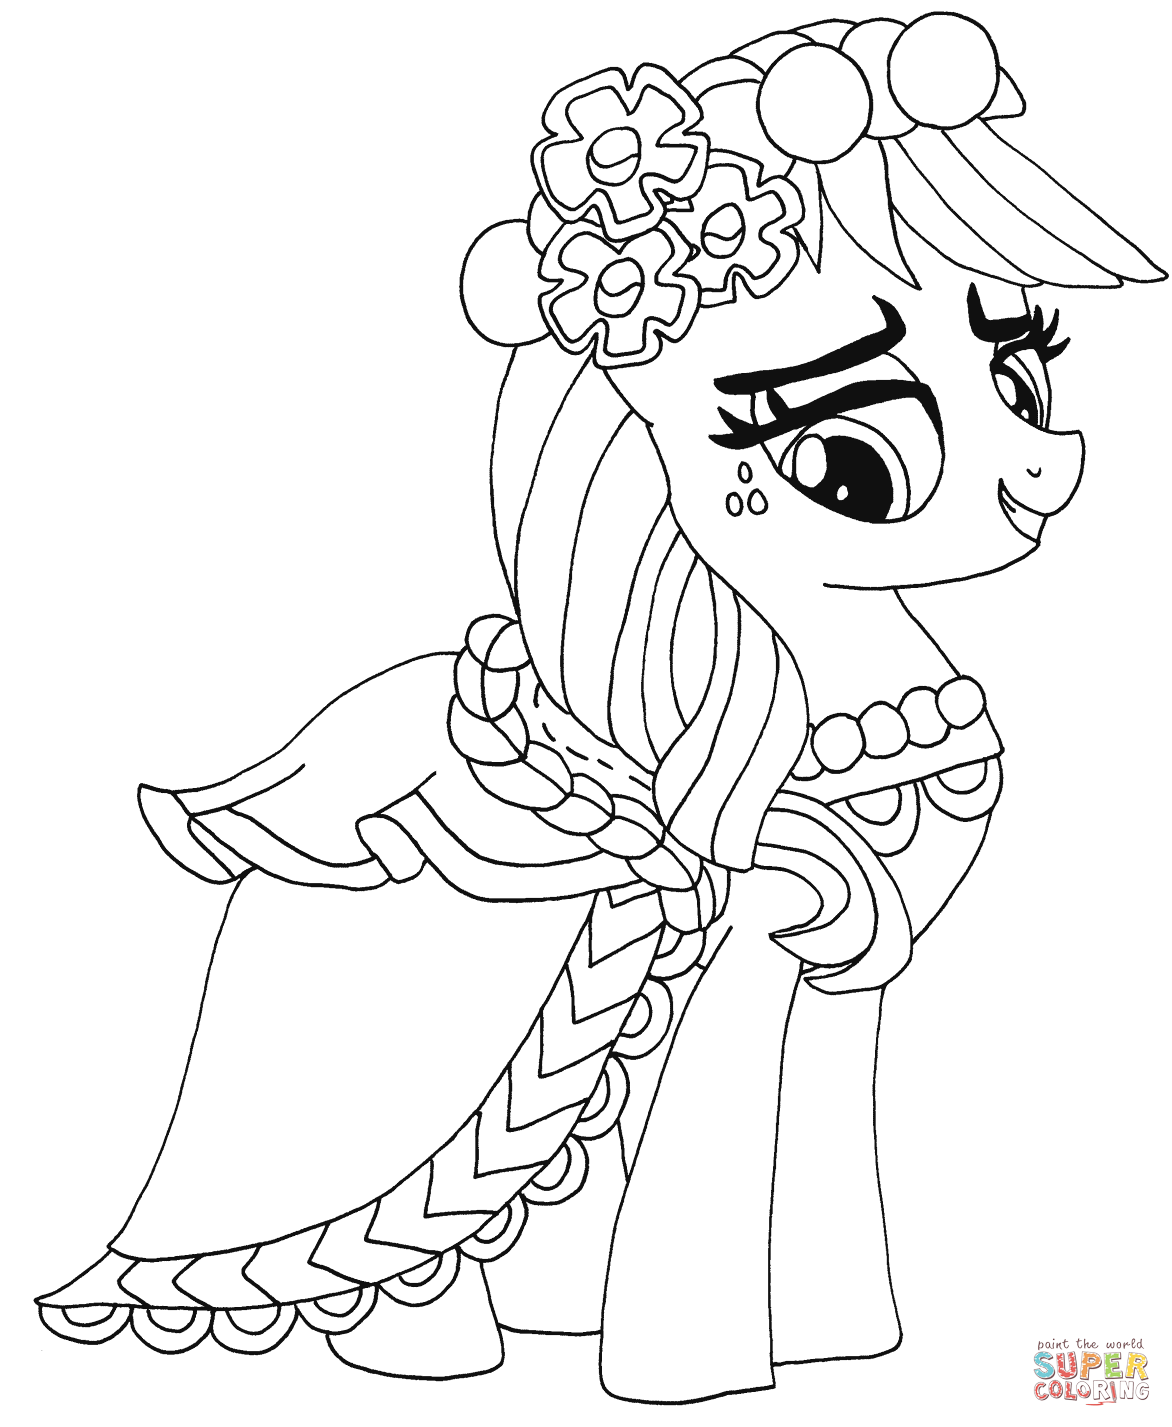 Princess Applejack Coloring Page Free Printable Coloring Pages